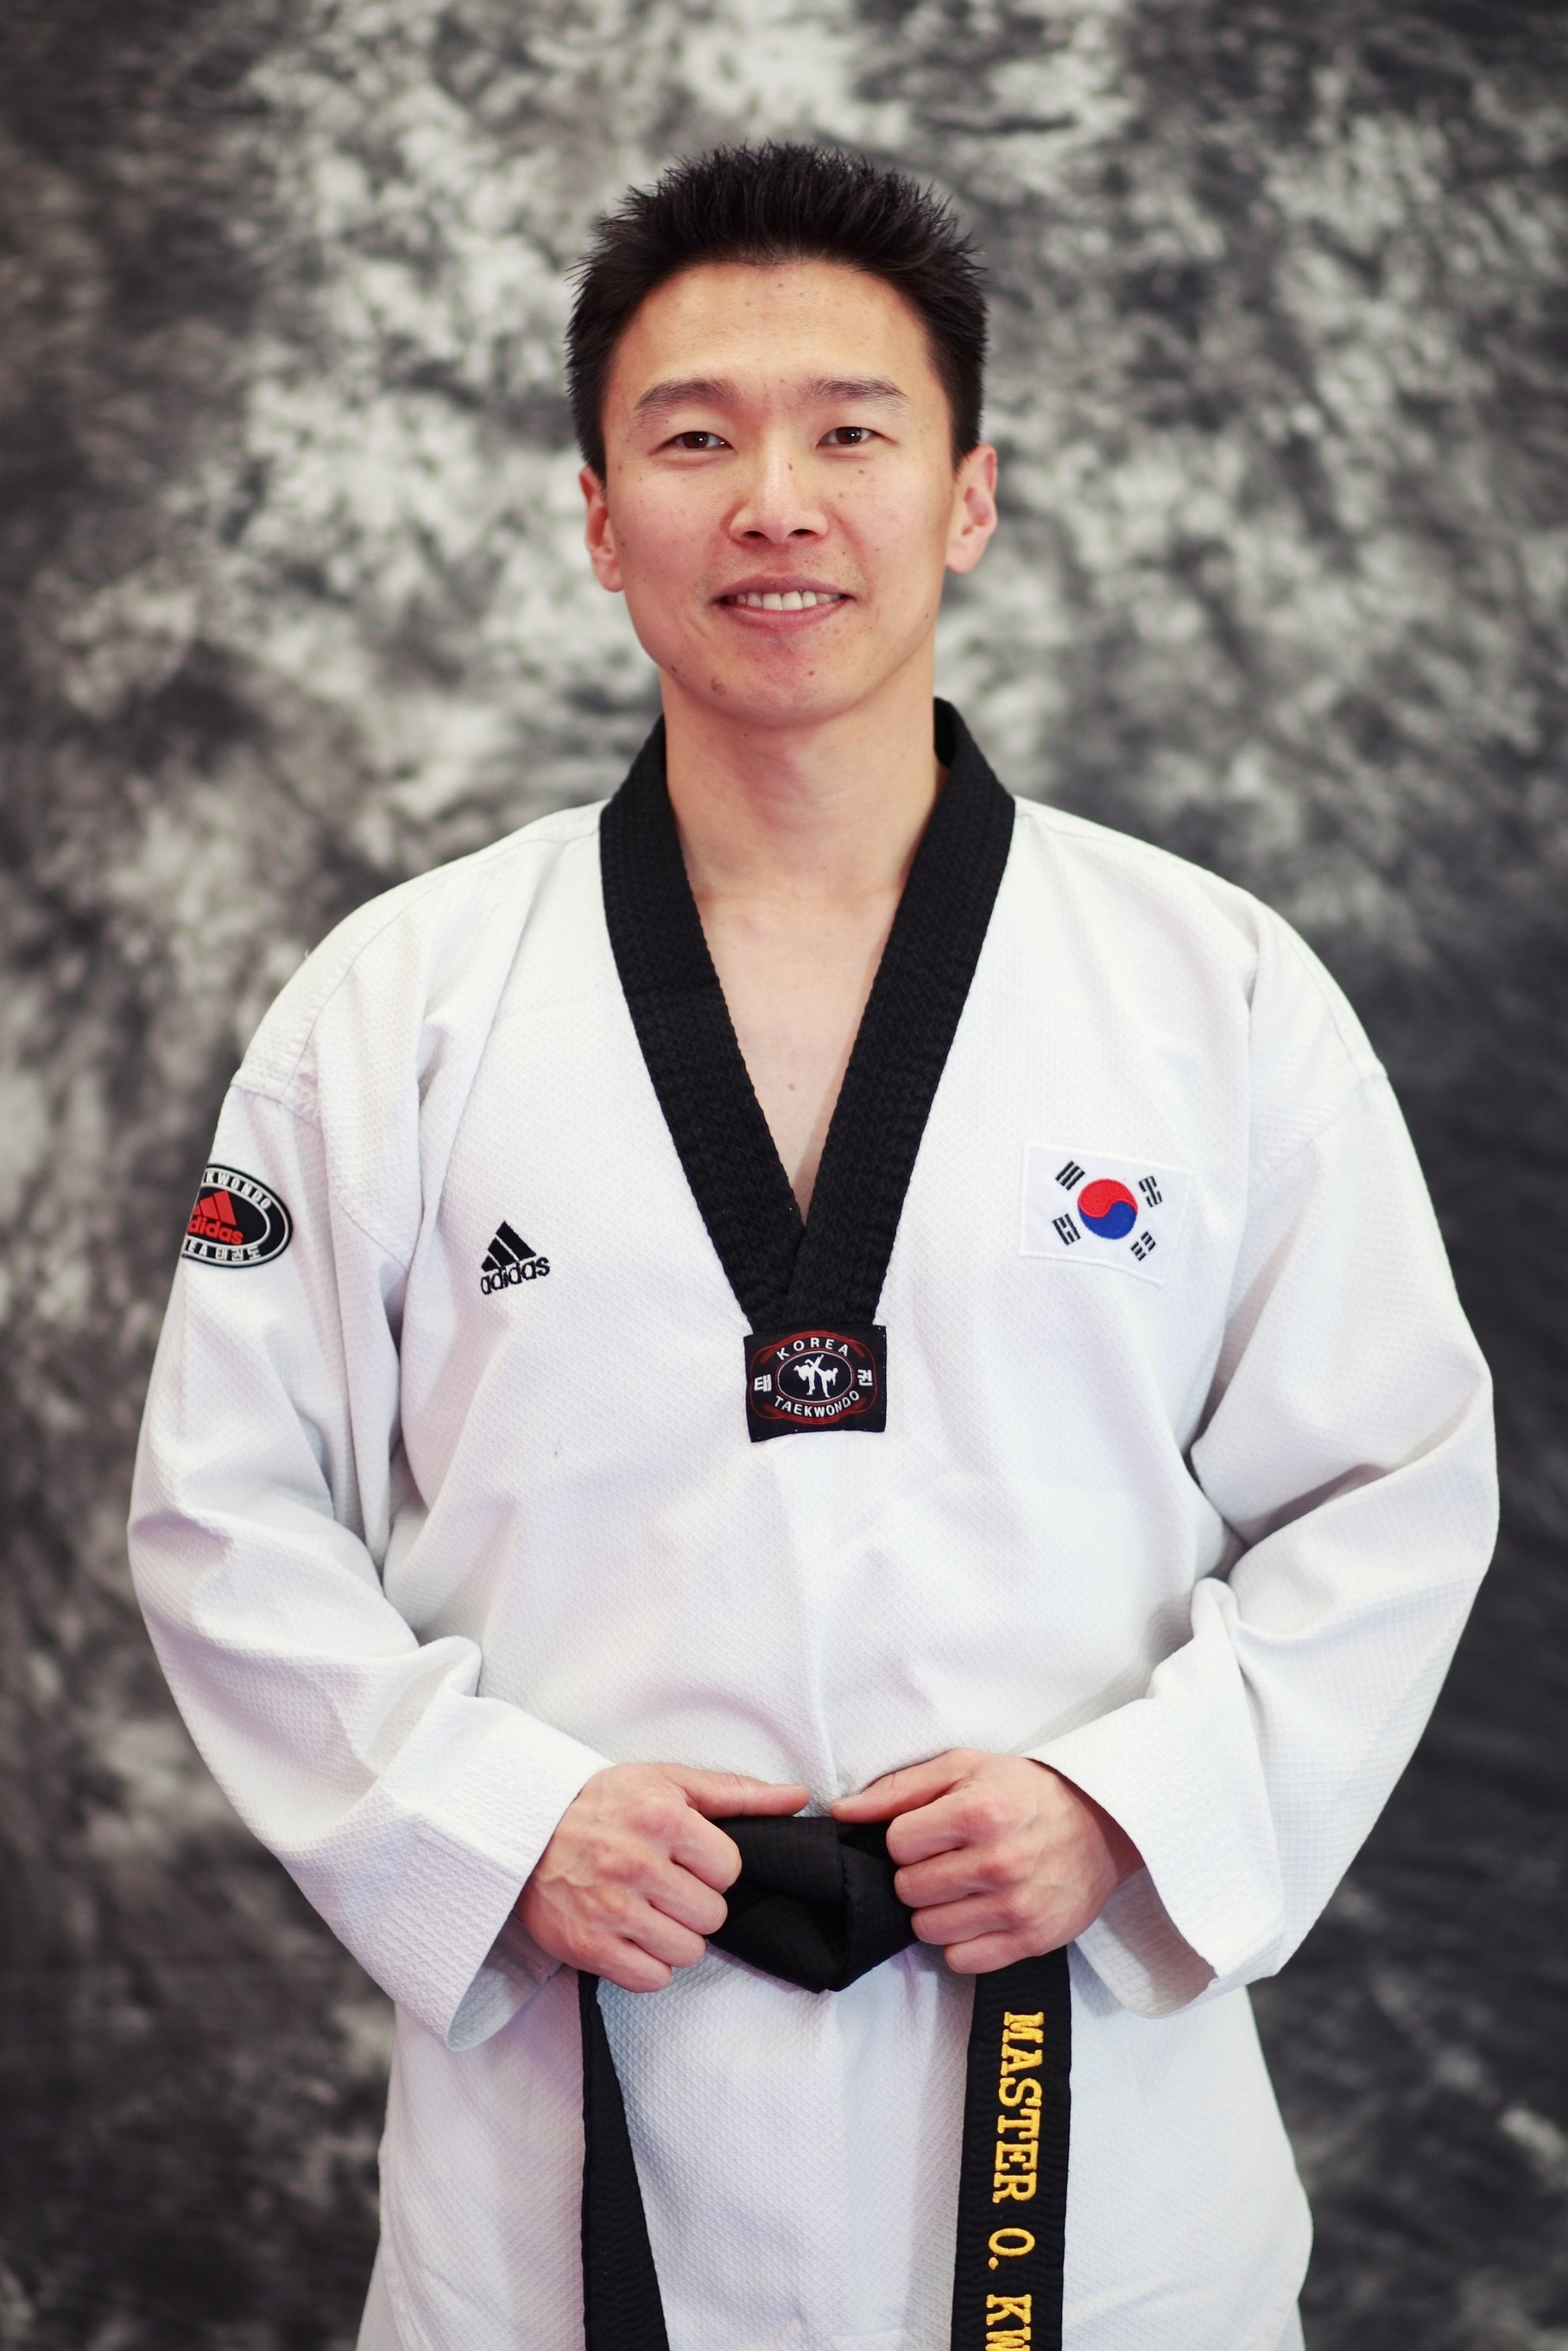 OH Kwon - Martial Arts, After School, Summer Camp Director7th DegreeBachelor of Taekwondo & Physical Education (Kyung Hee University)